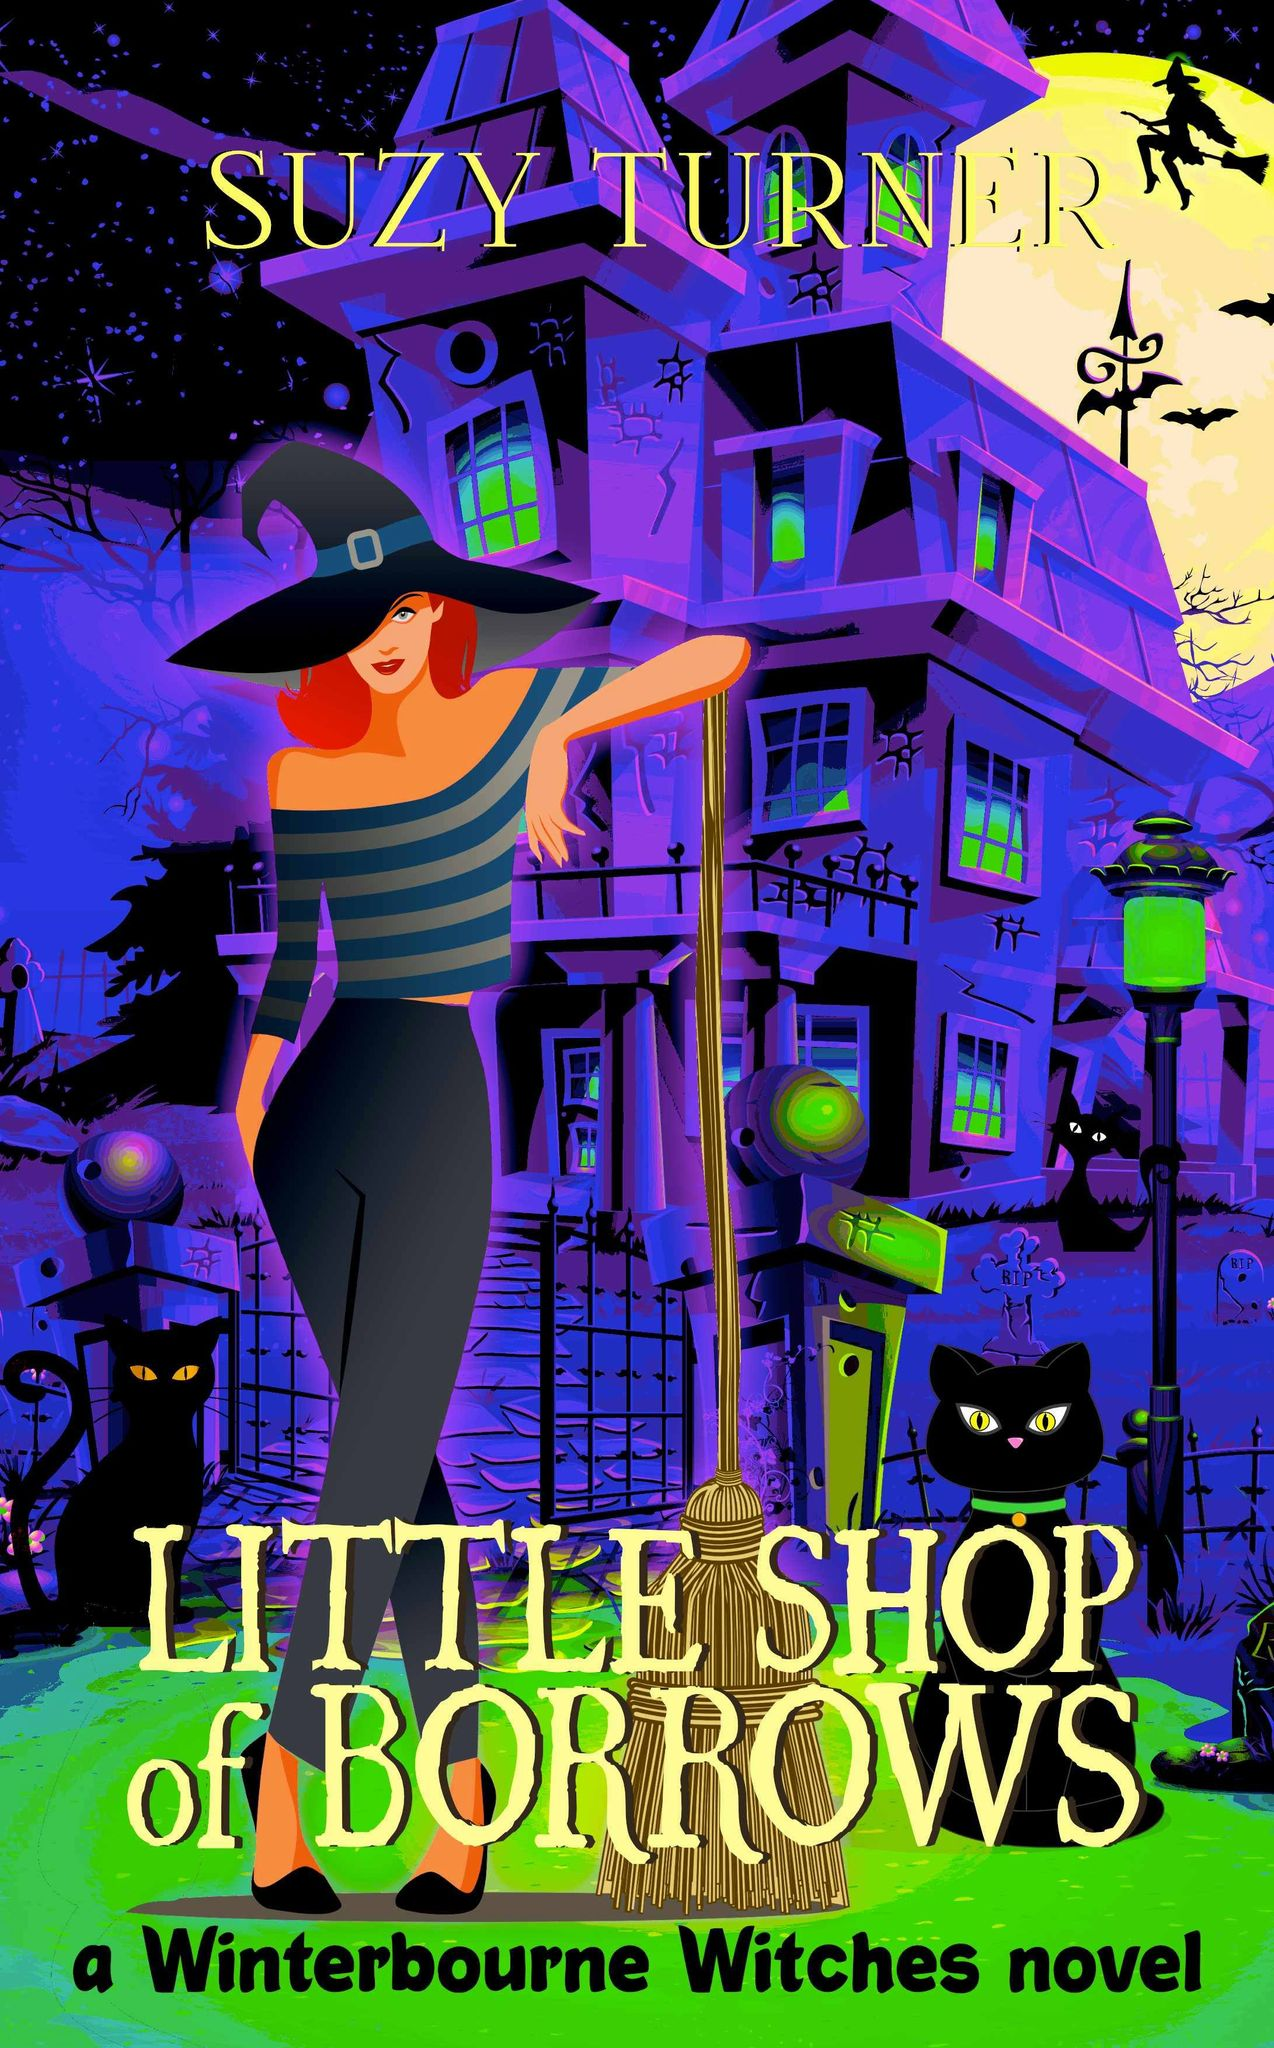 little shop of borrows